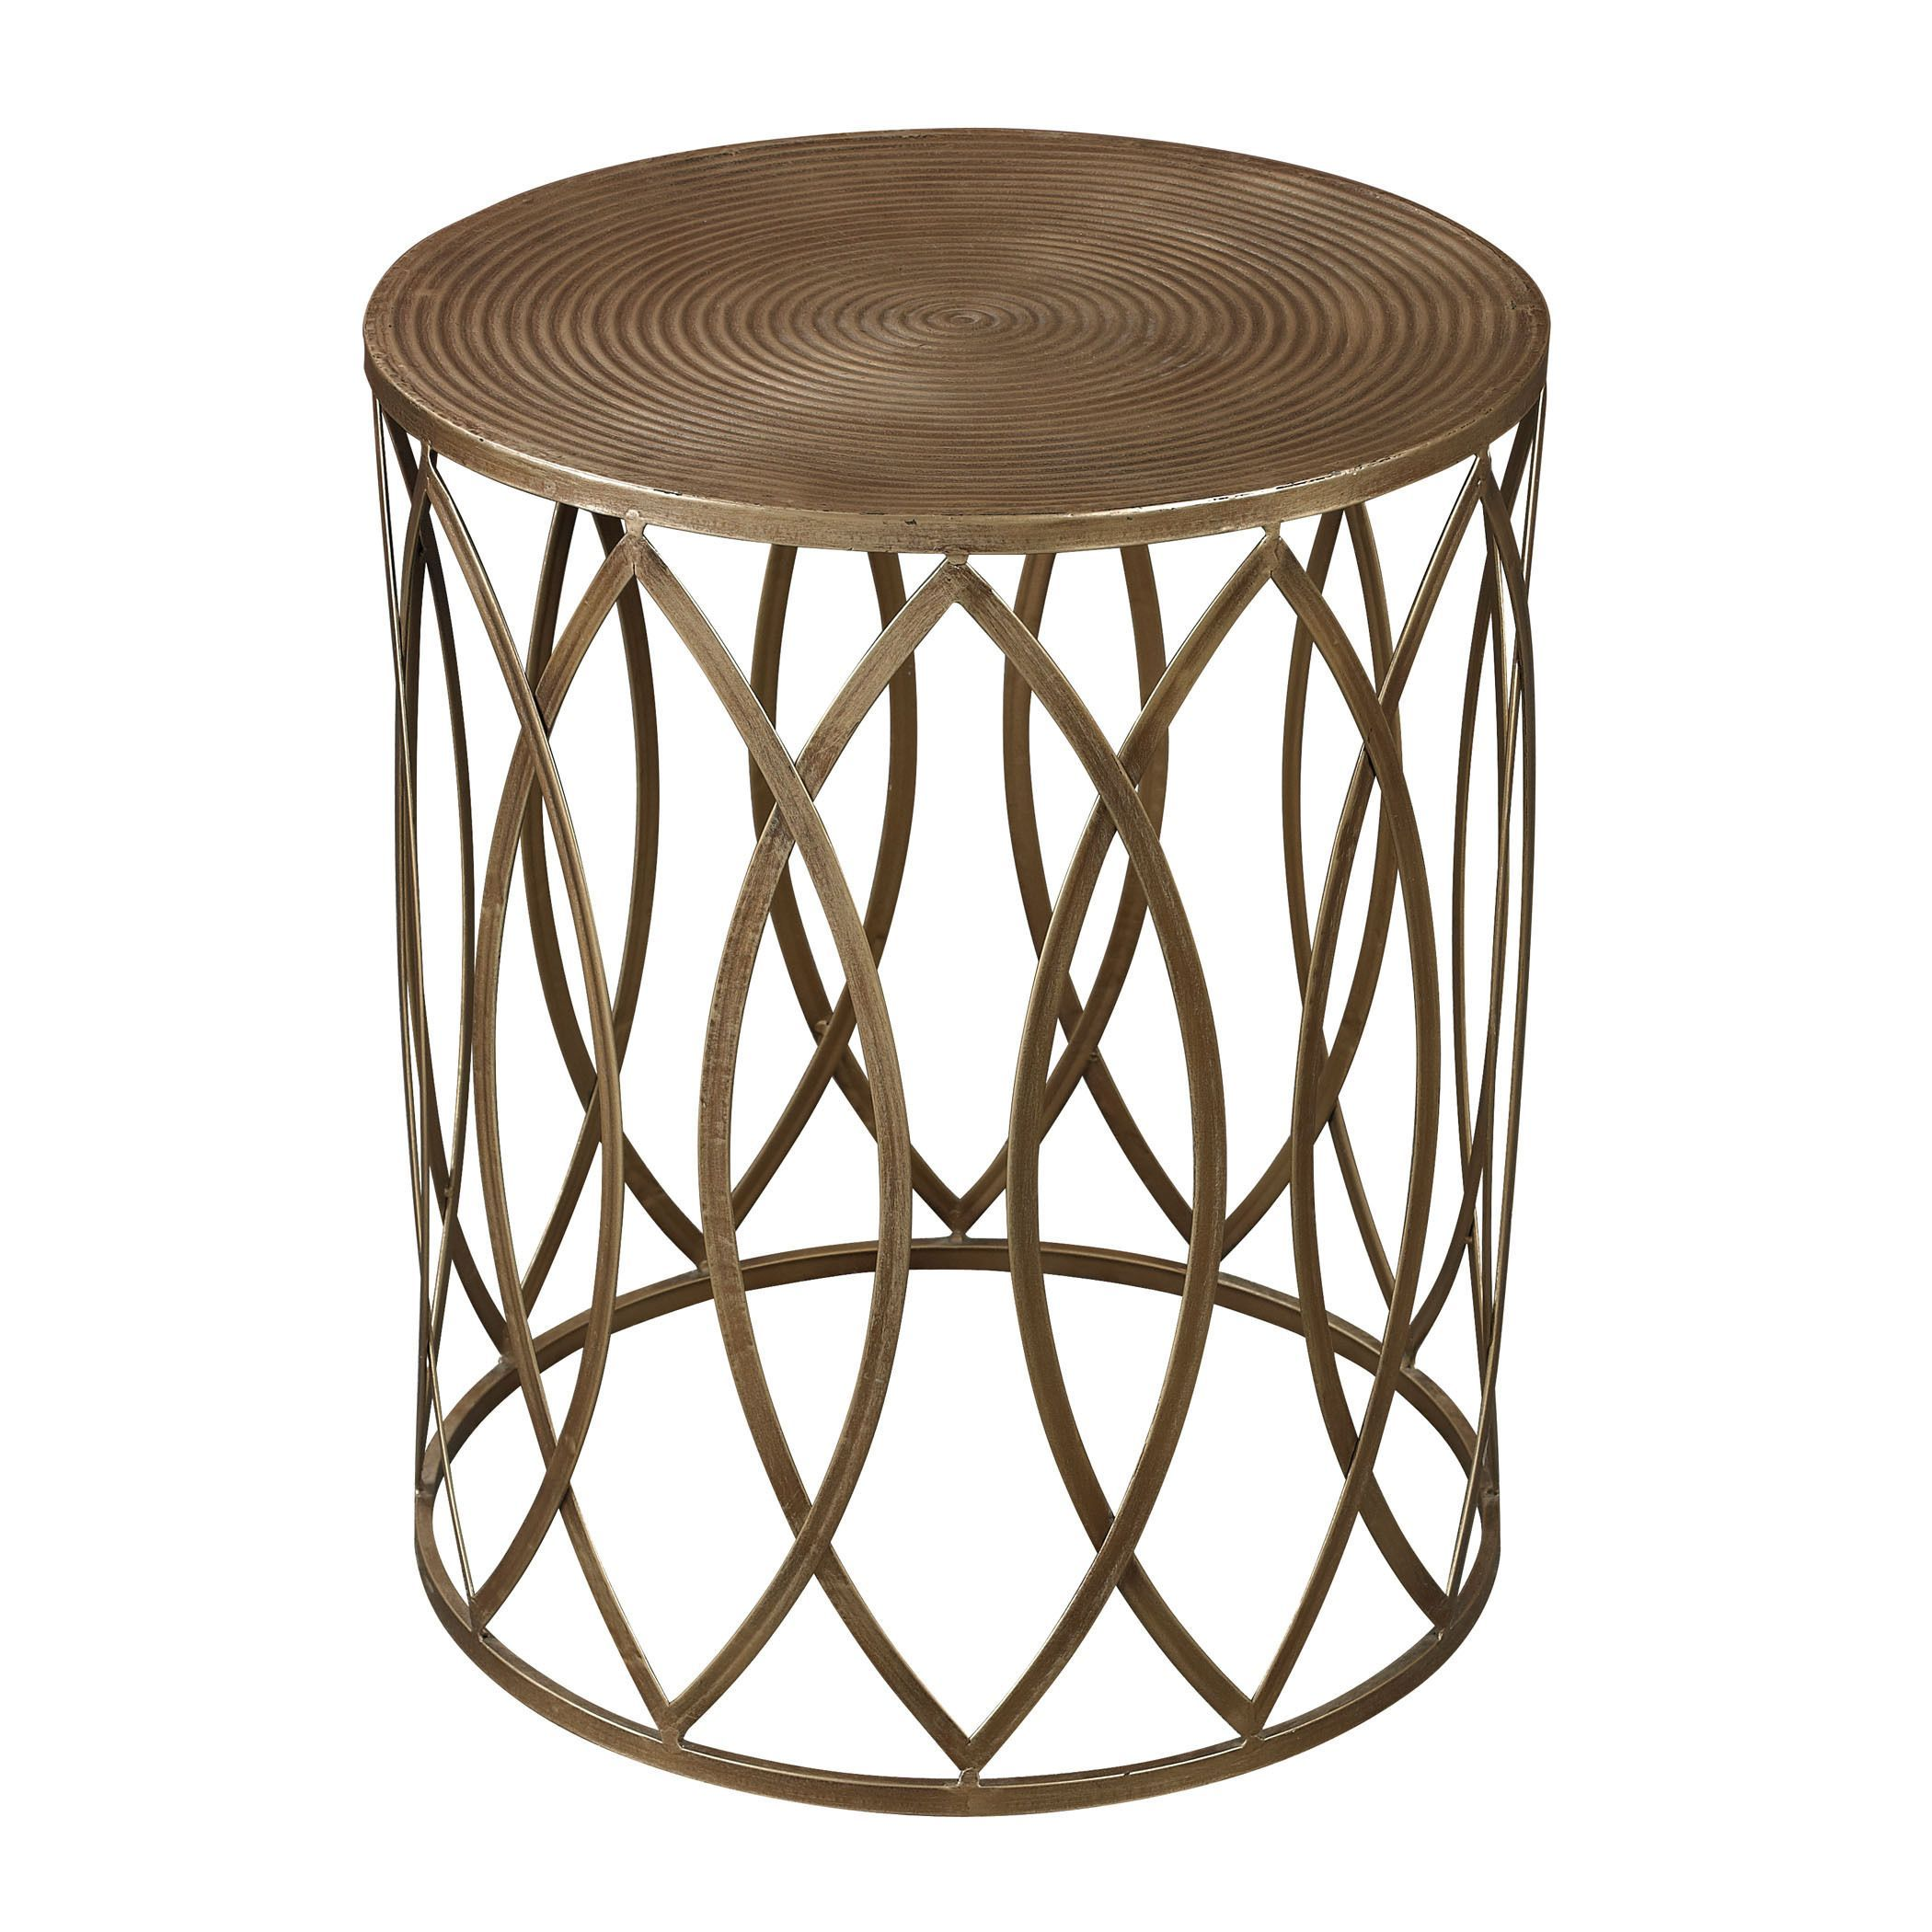 Erstaunlich 136 Add Simple Style To Any Space With The Sutton Gold Leaf Accent Table.  This. Akzent TischeGoldener AkzenttischWohnzimmer ...